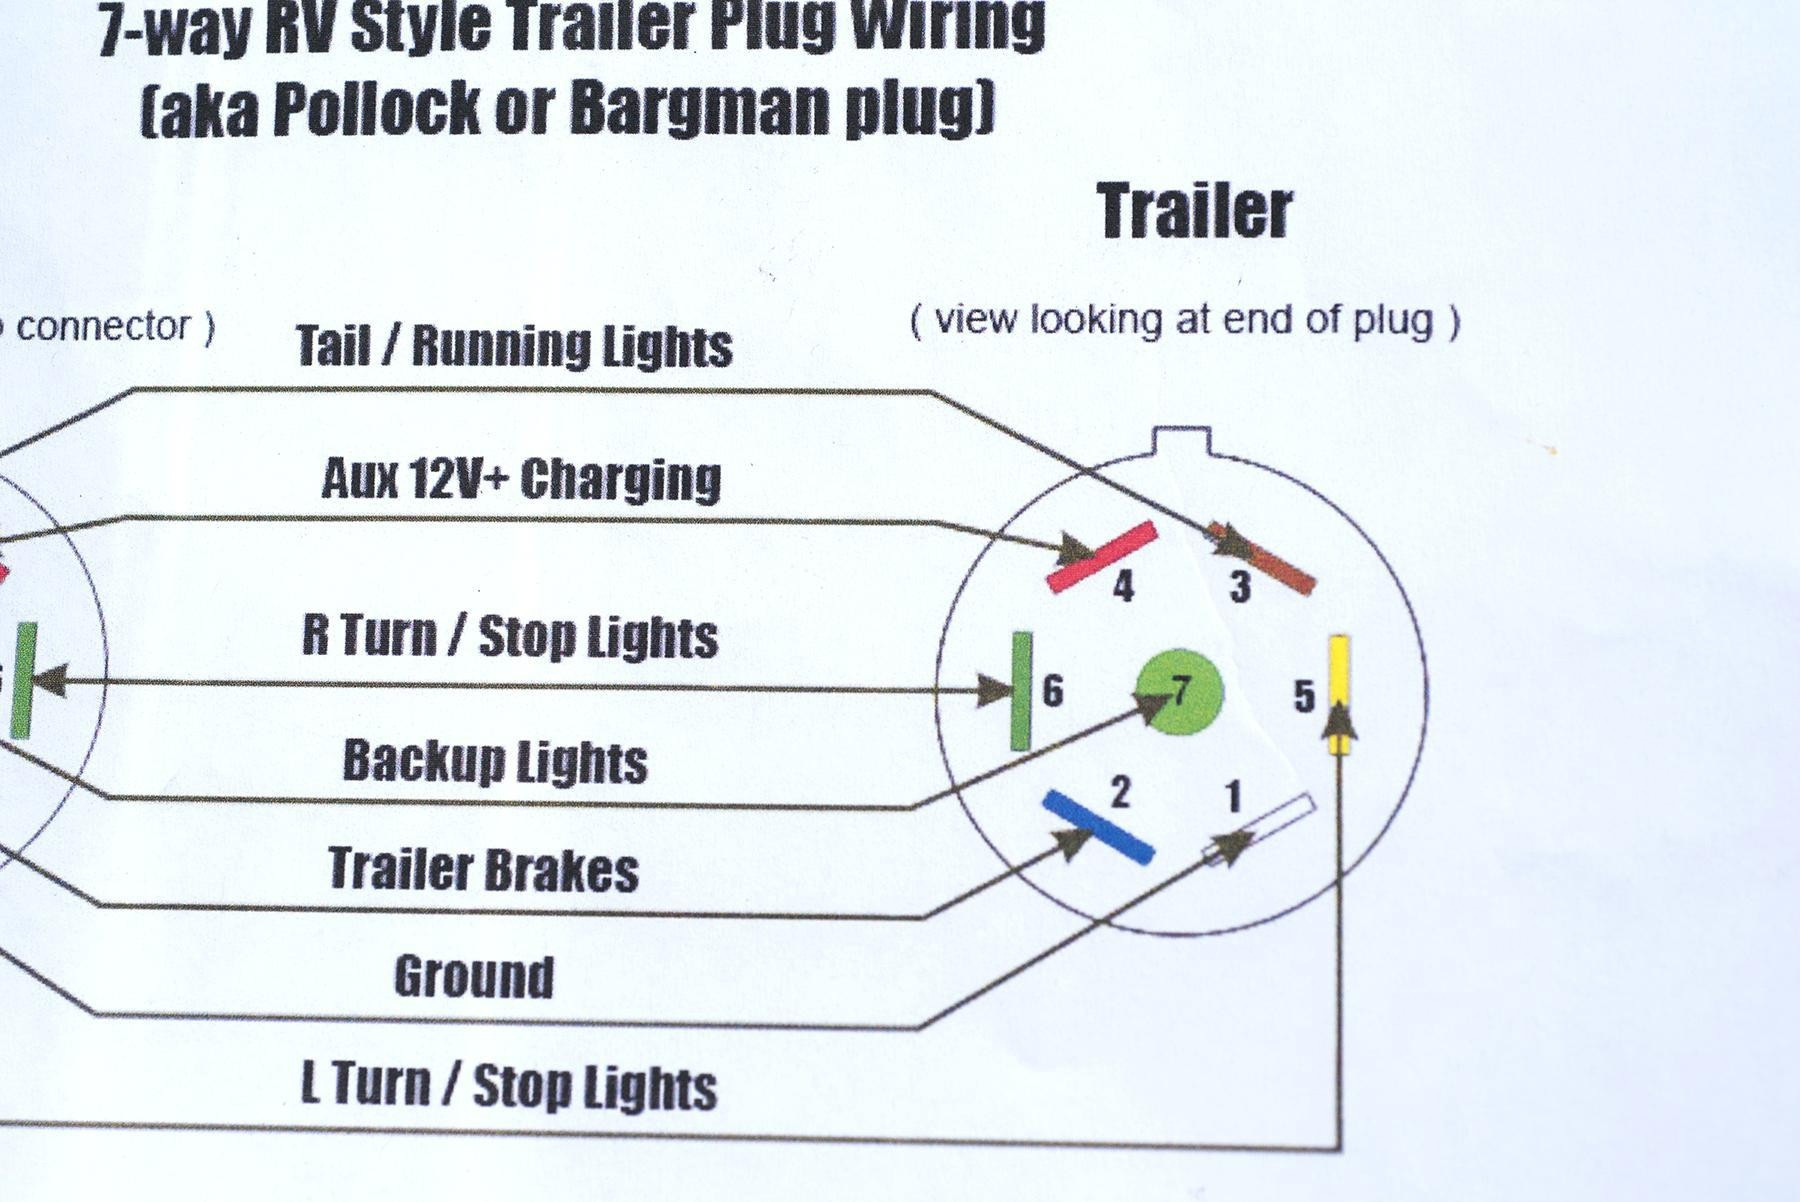 Trailer Light Wiring Diagram 7 Way Book Of Rv Trailer Plug Wiring - 7 Way Rv Trailer Plug Wiring Diagram